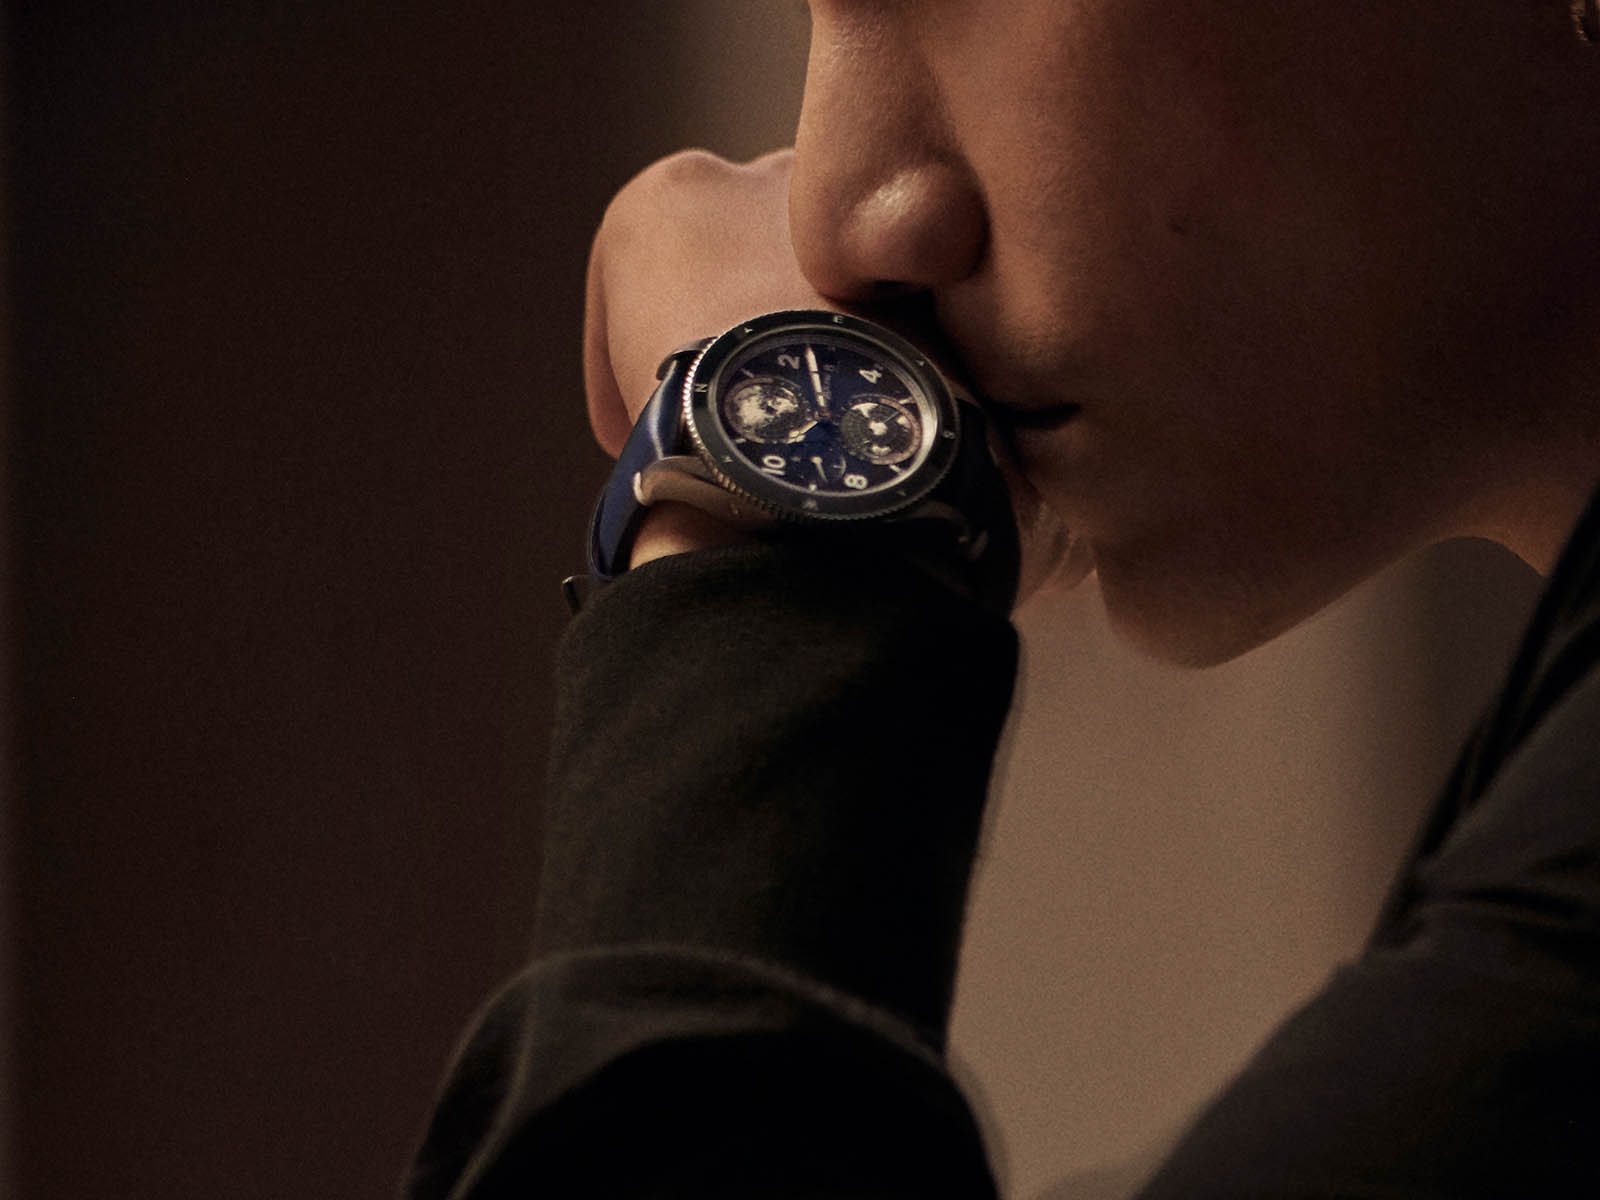 montblanc-what-moves-you-makes-you-2.jpg